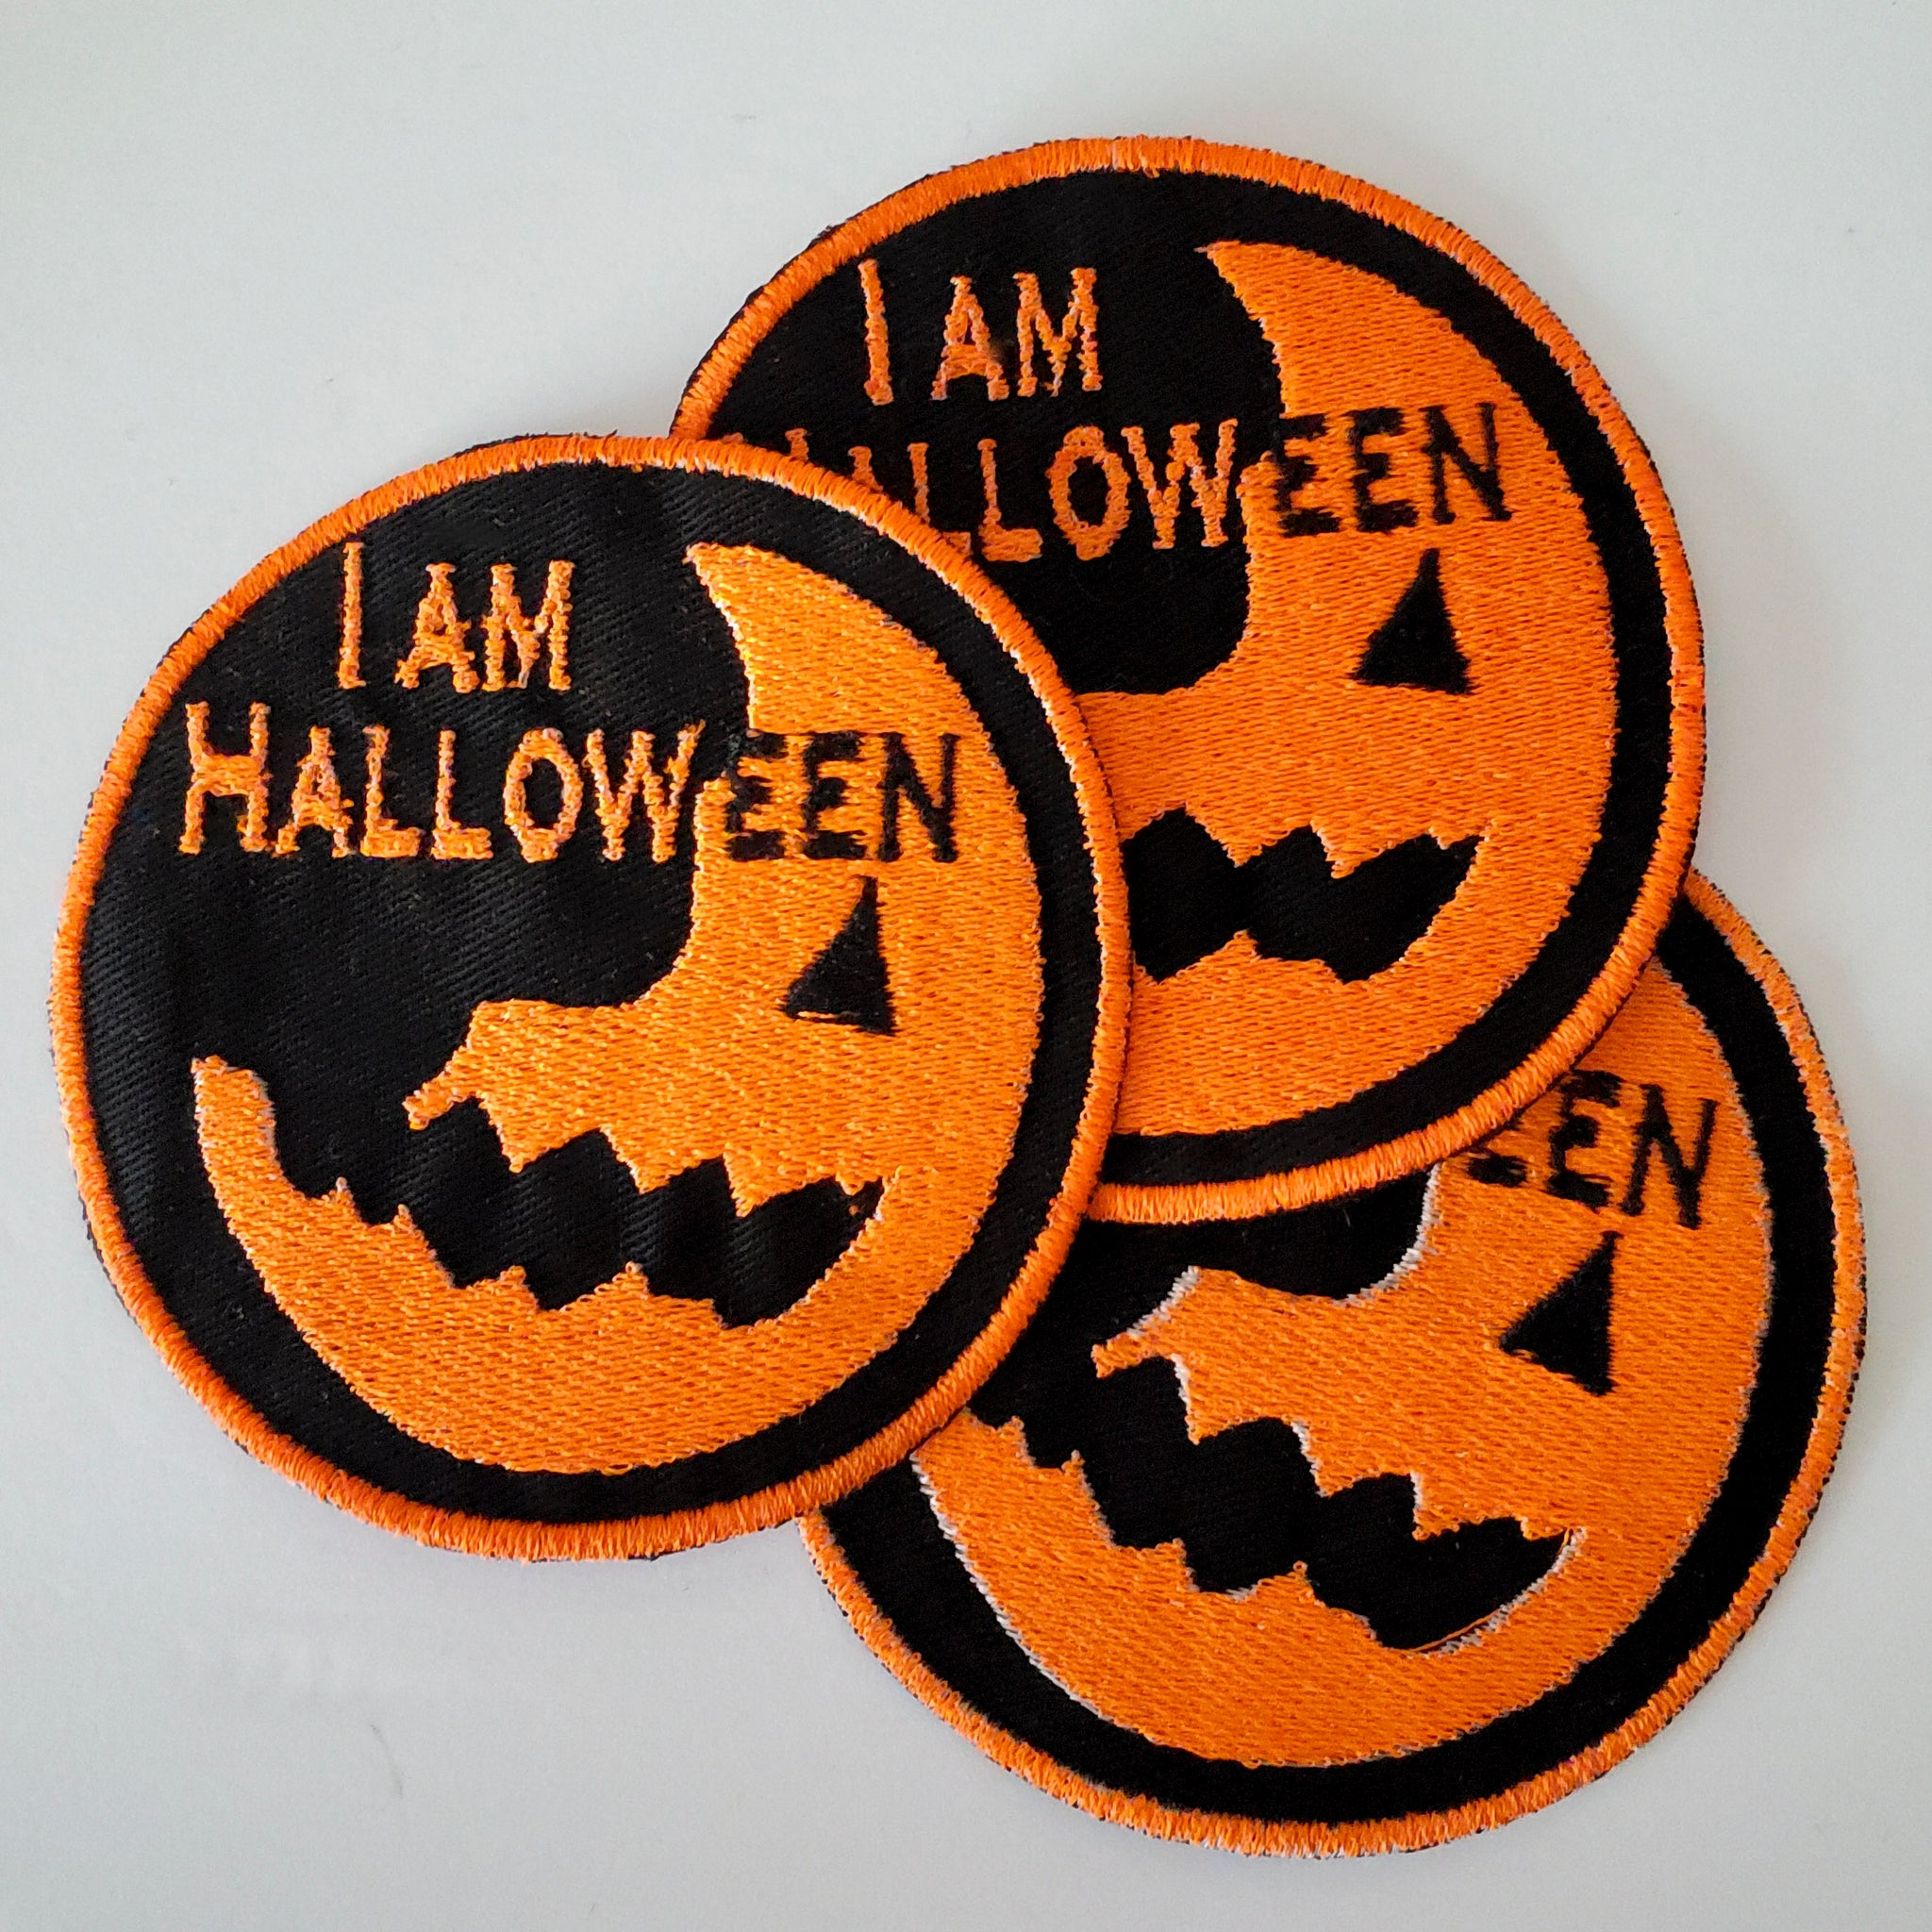 I am Halloween Patch